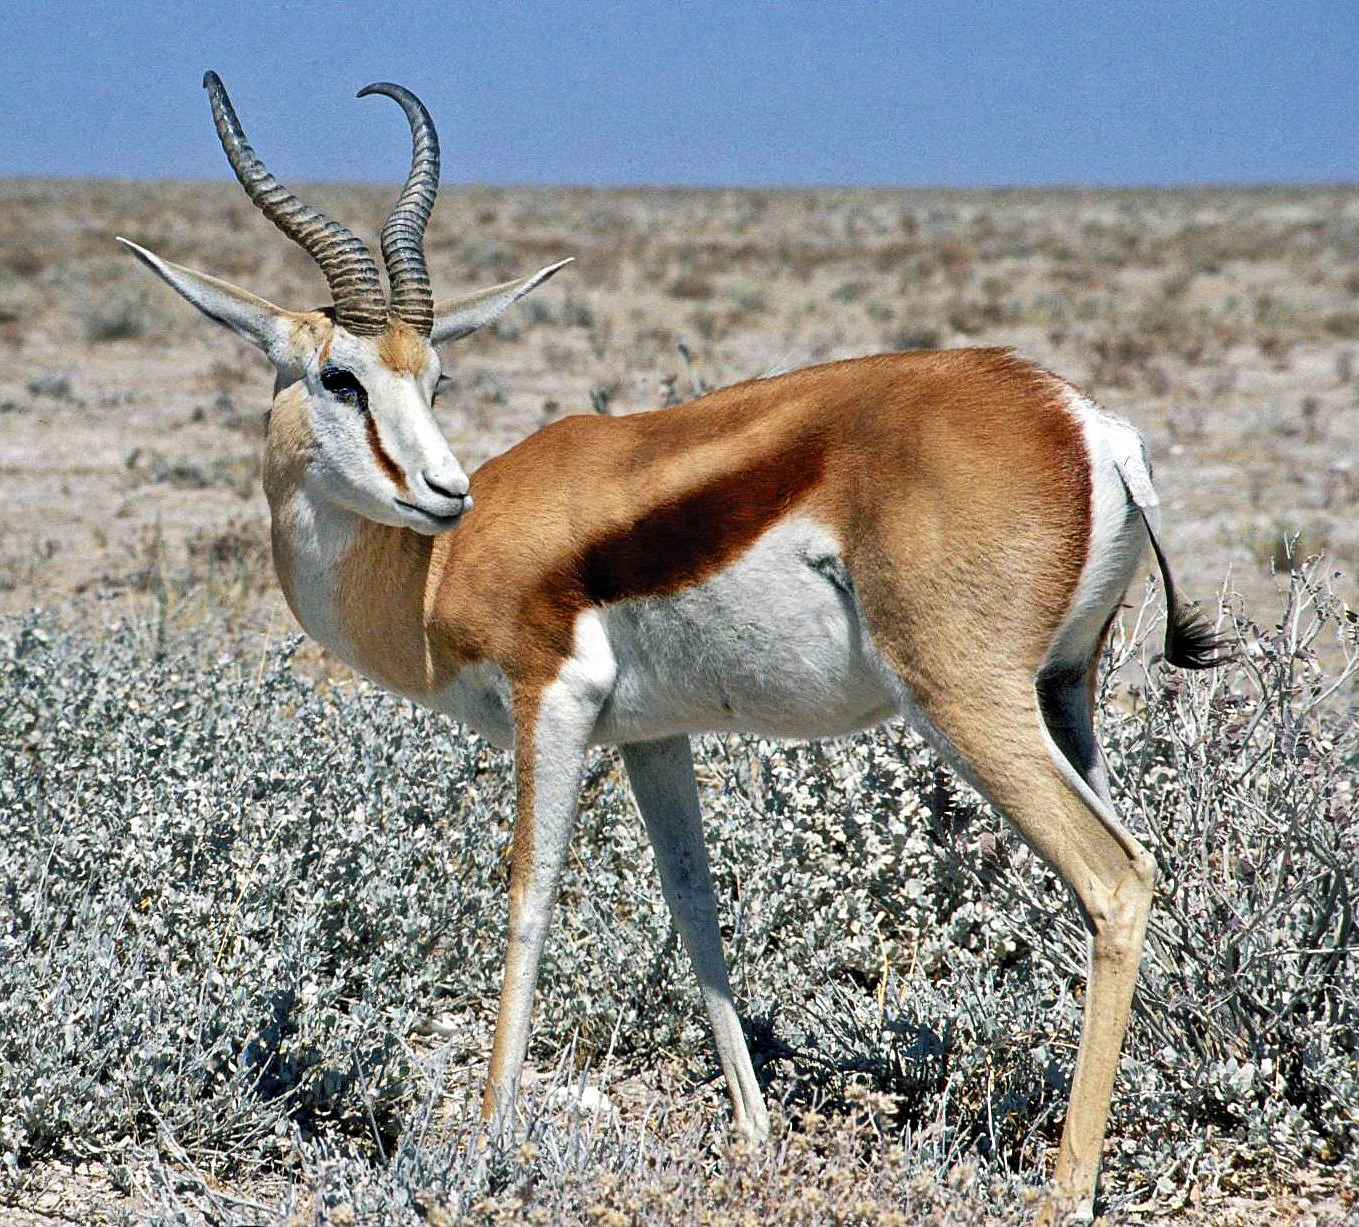 https://i0.wp.com/upload.wikimedia.org/wikipedia/commons/5/56/Springbok_Namibia.jpg